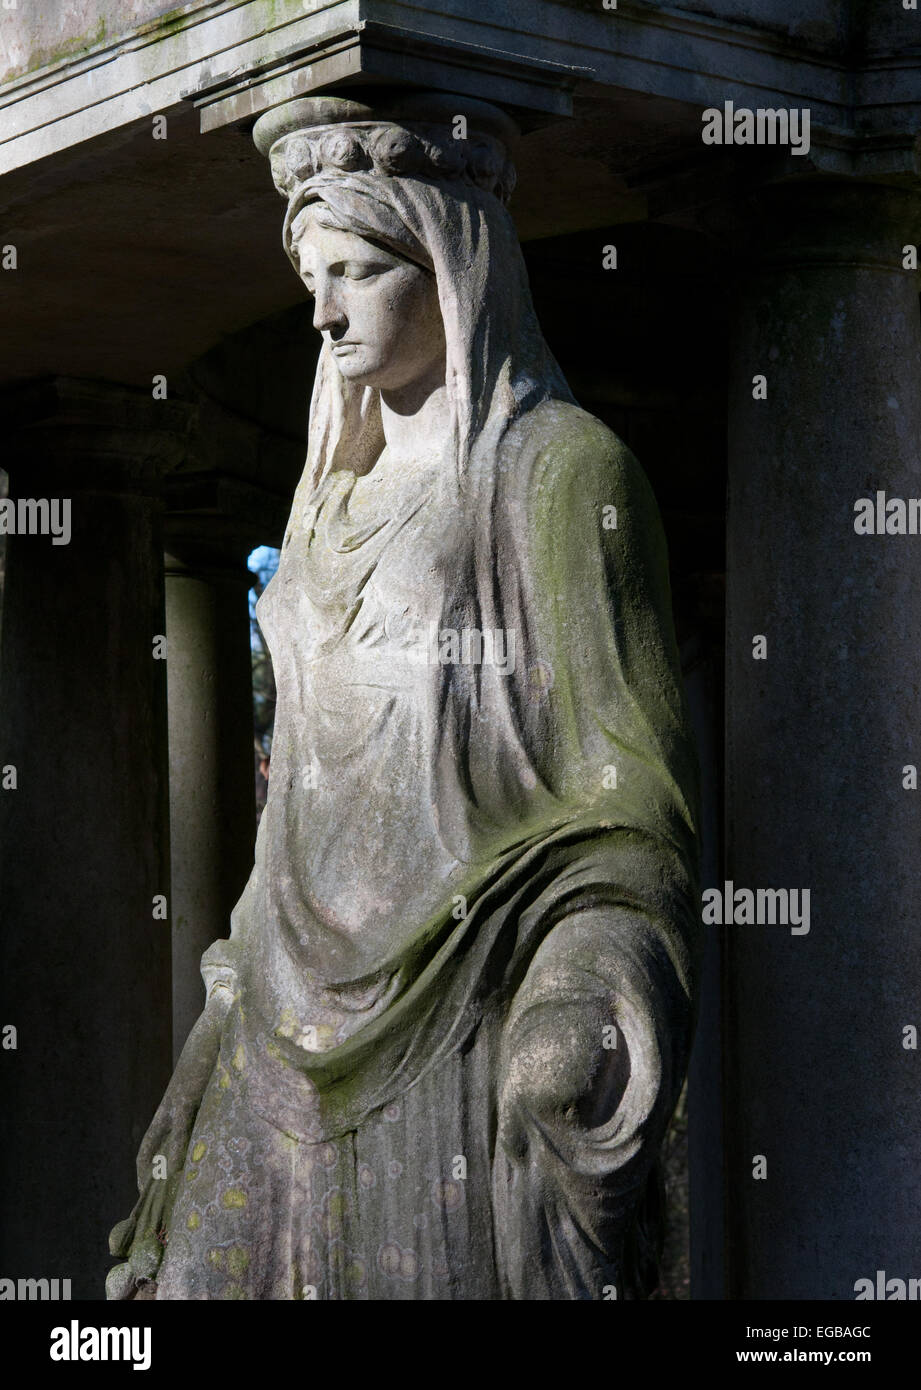 Grieving angel stone sculpture on grand tomb, Stahnsdorf Cemetery near Berlin - Stock Image